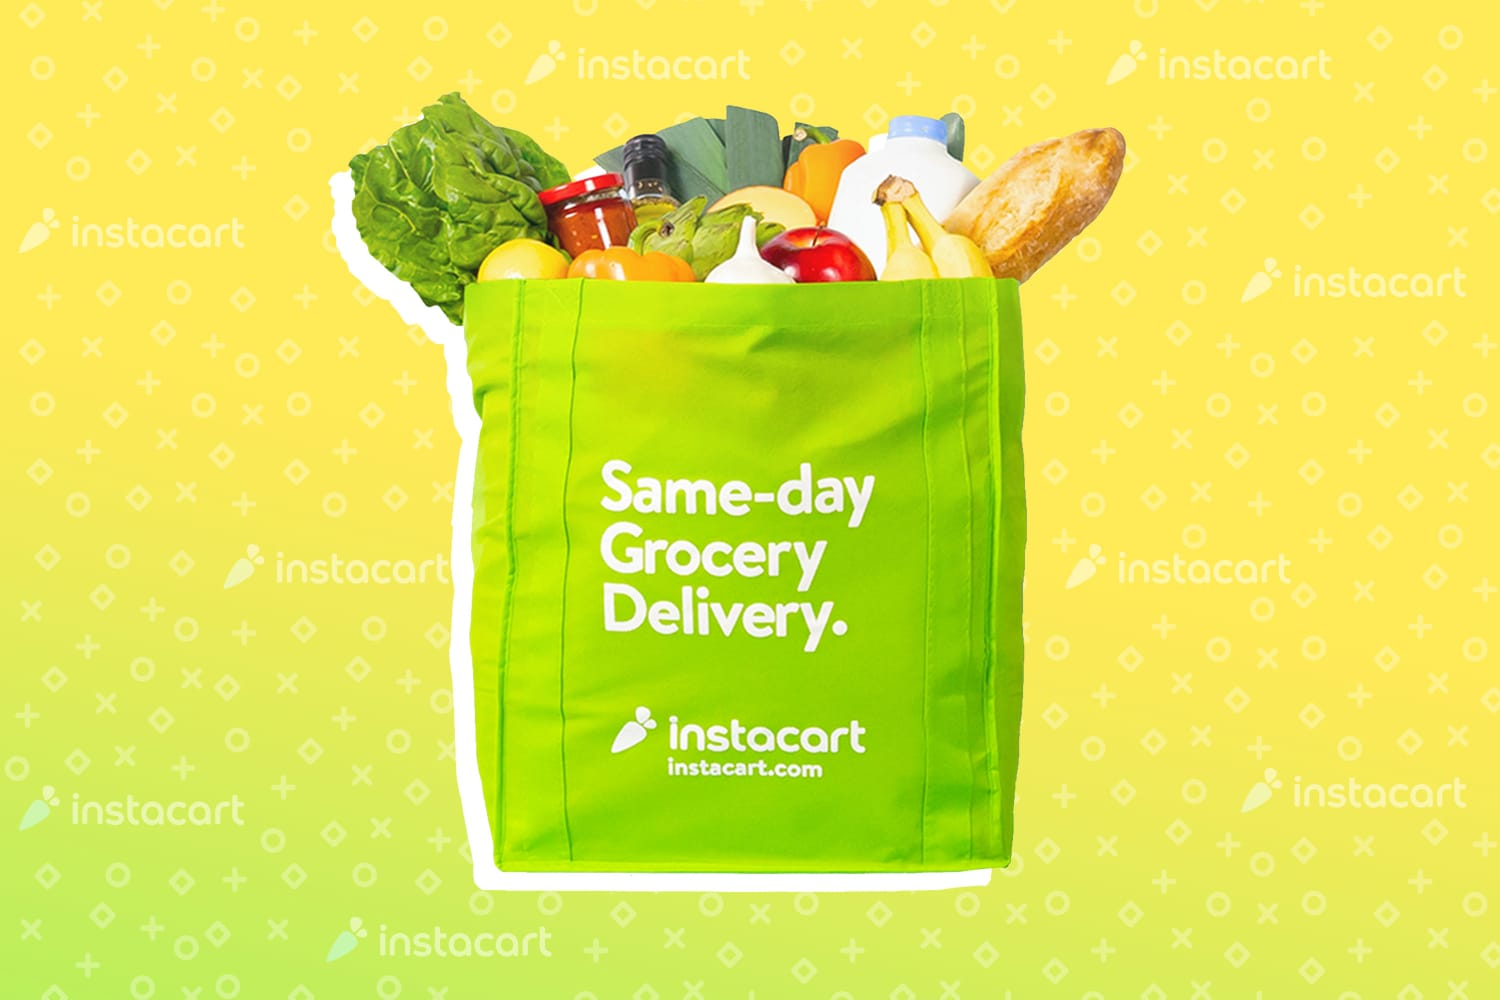 How Instacart Grocery Delivery Works And What It Costs Kitchn